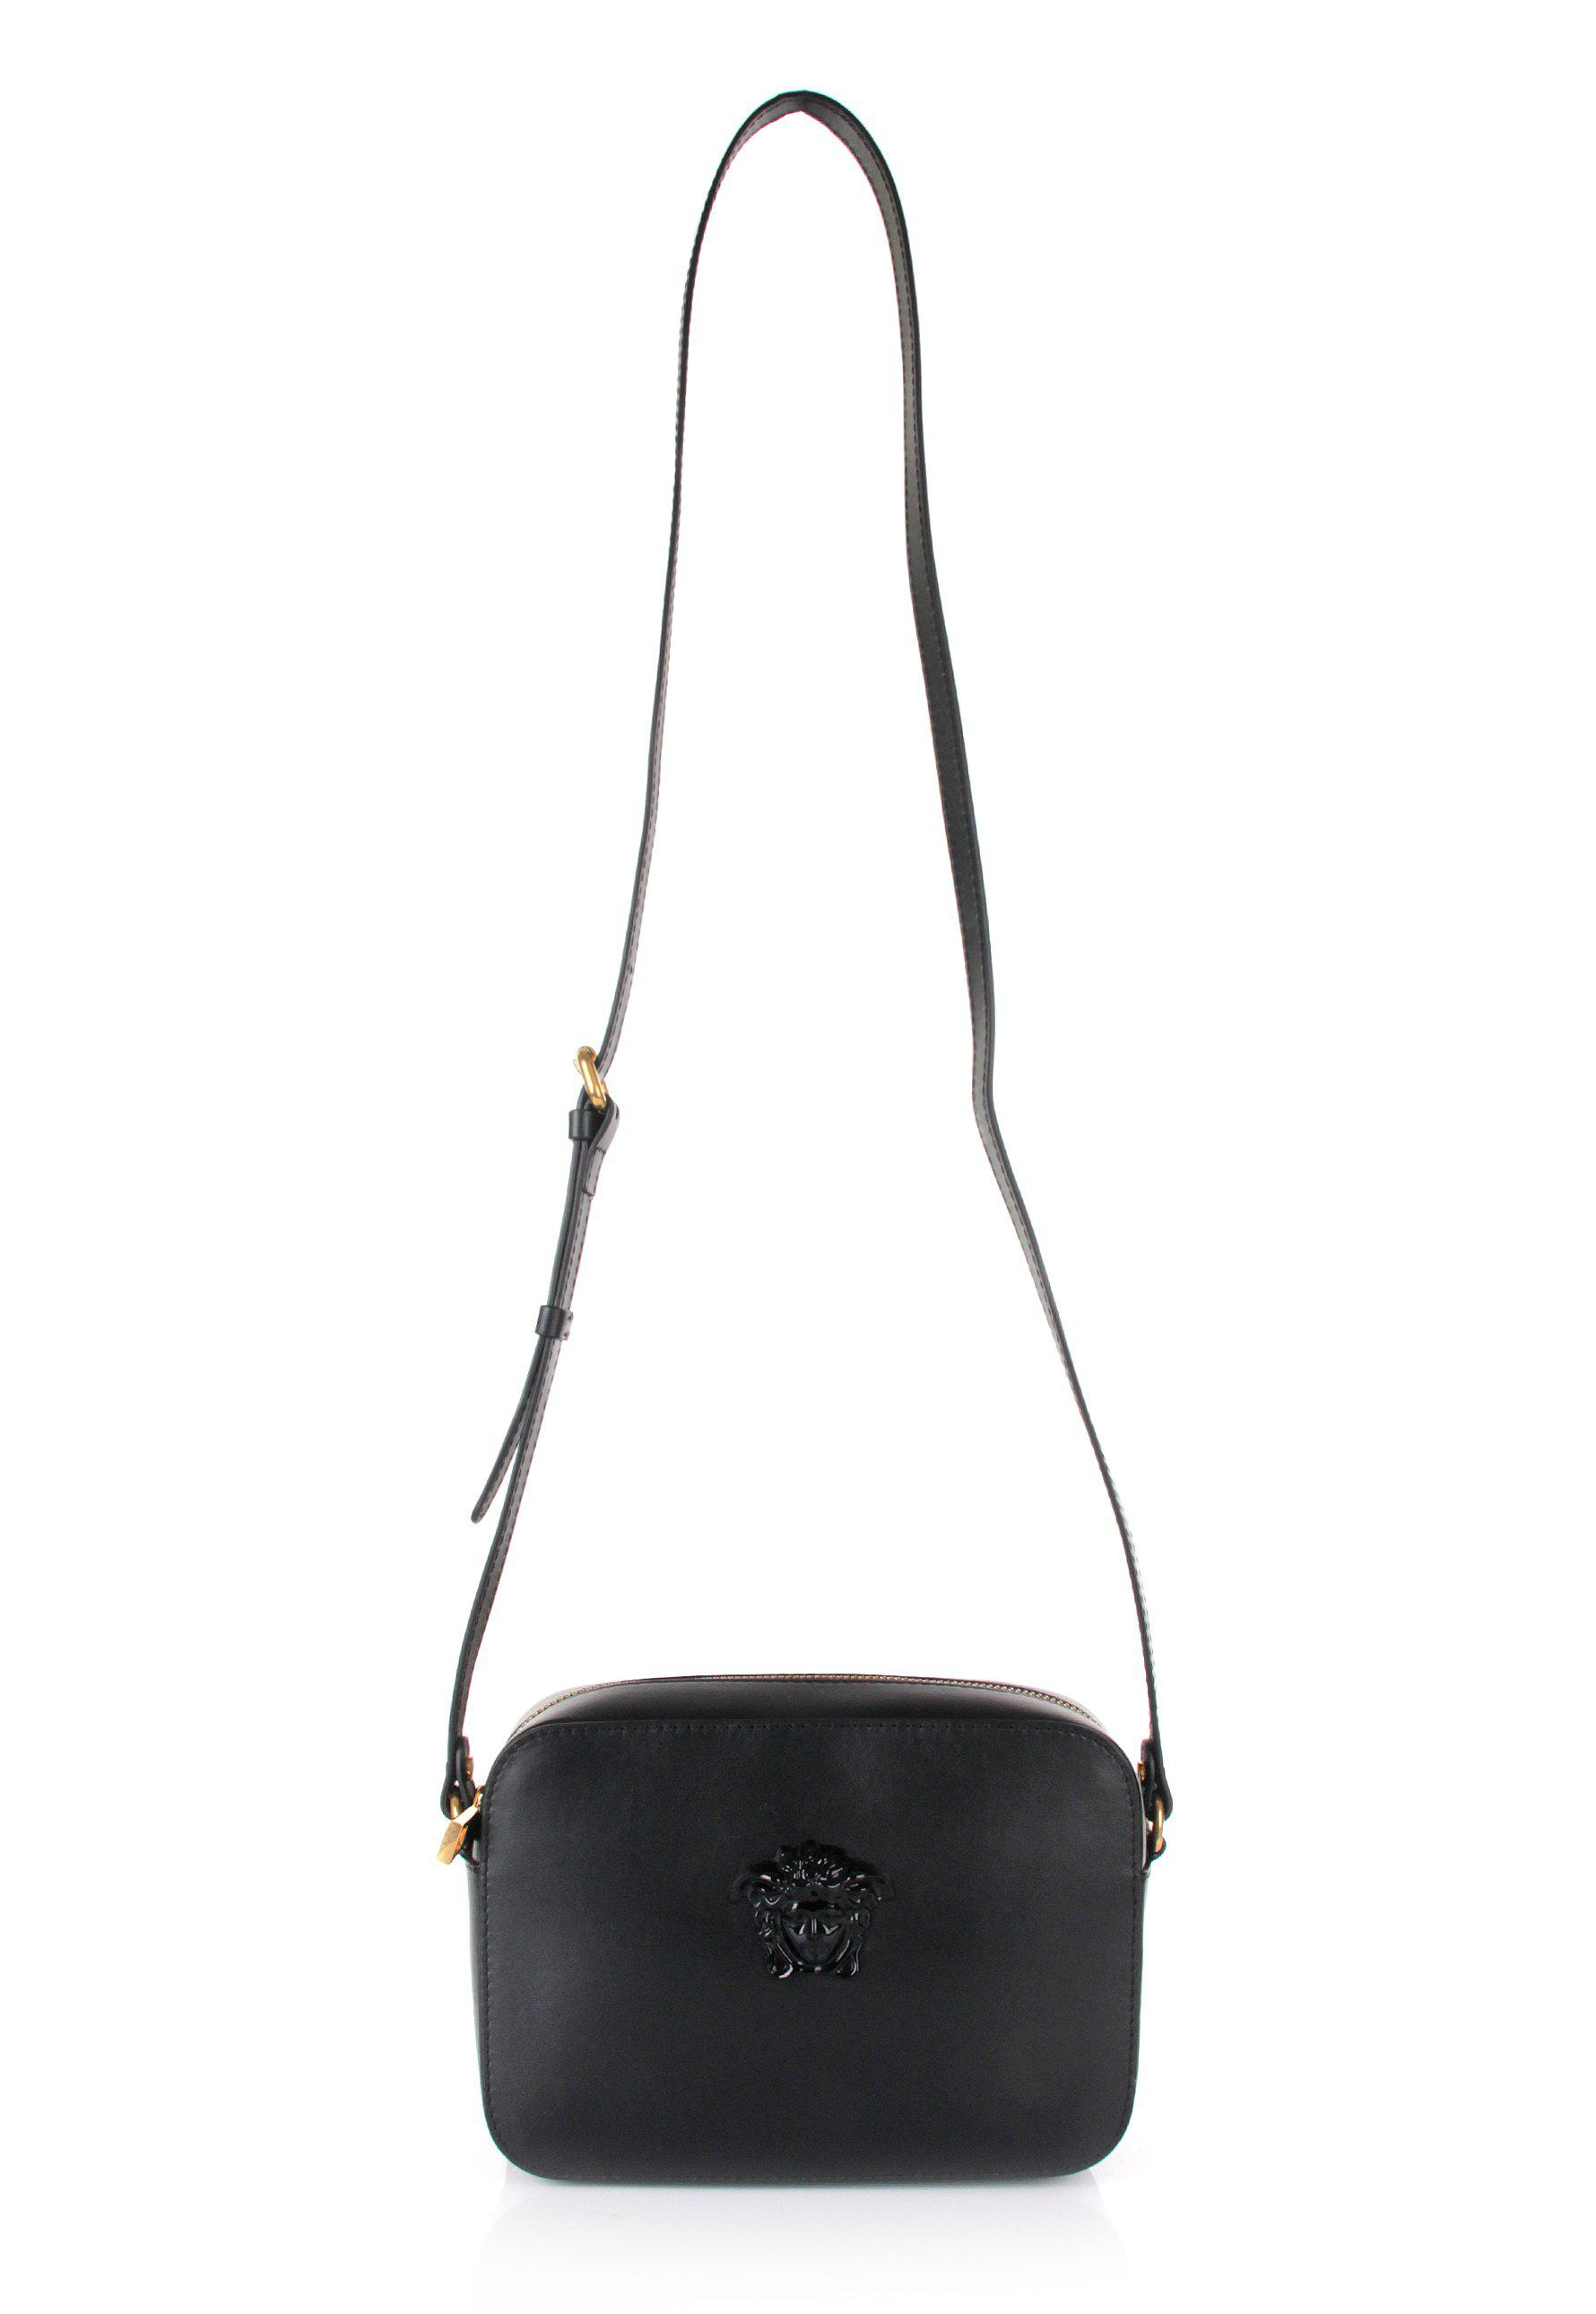 9f60a41512 Versace Large Medusa Head Side Bag Black/gold in Black - Lyst